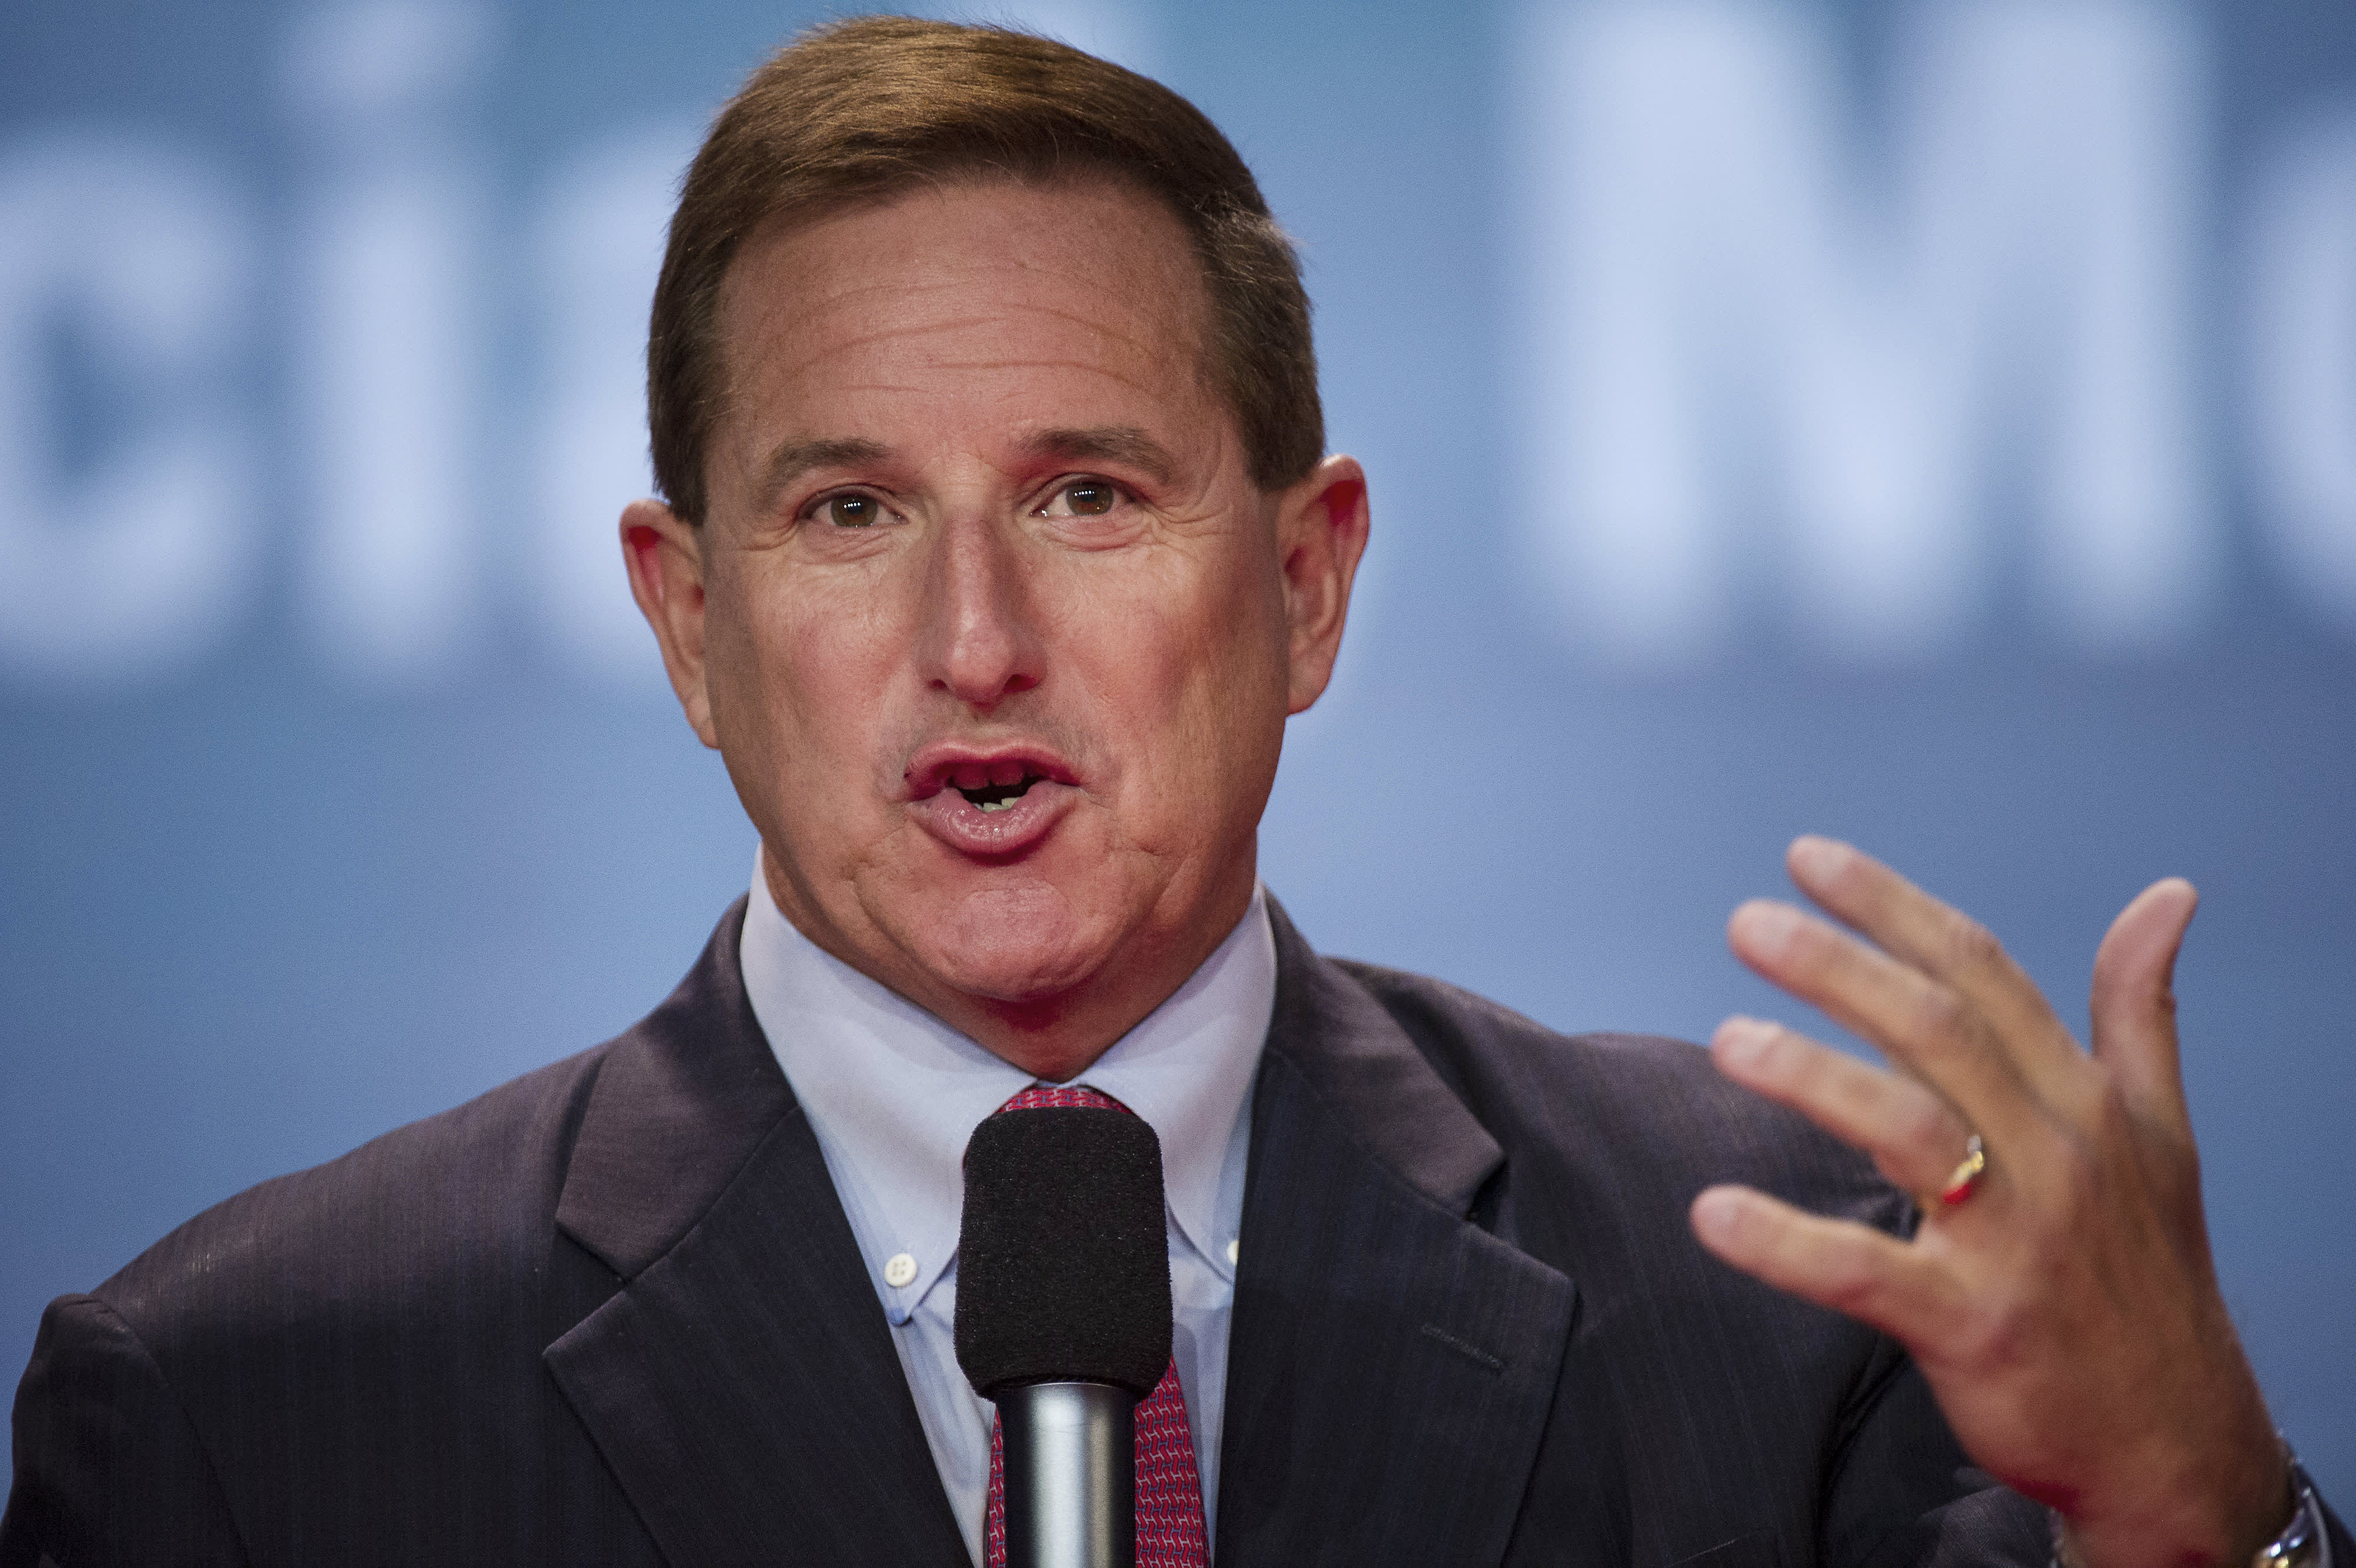 Tech leaders pay tribute to Oracle's Mark Hurd, who died on Friday